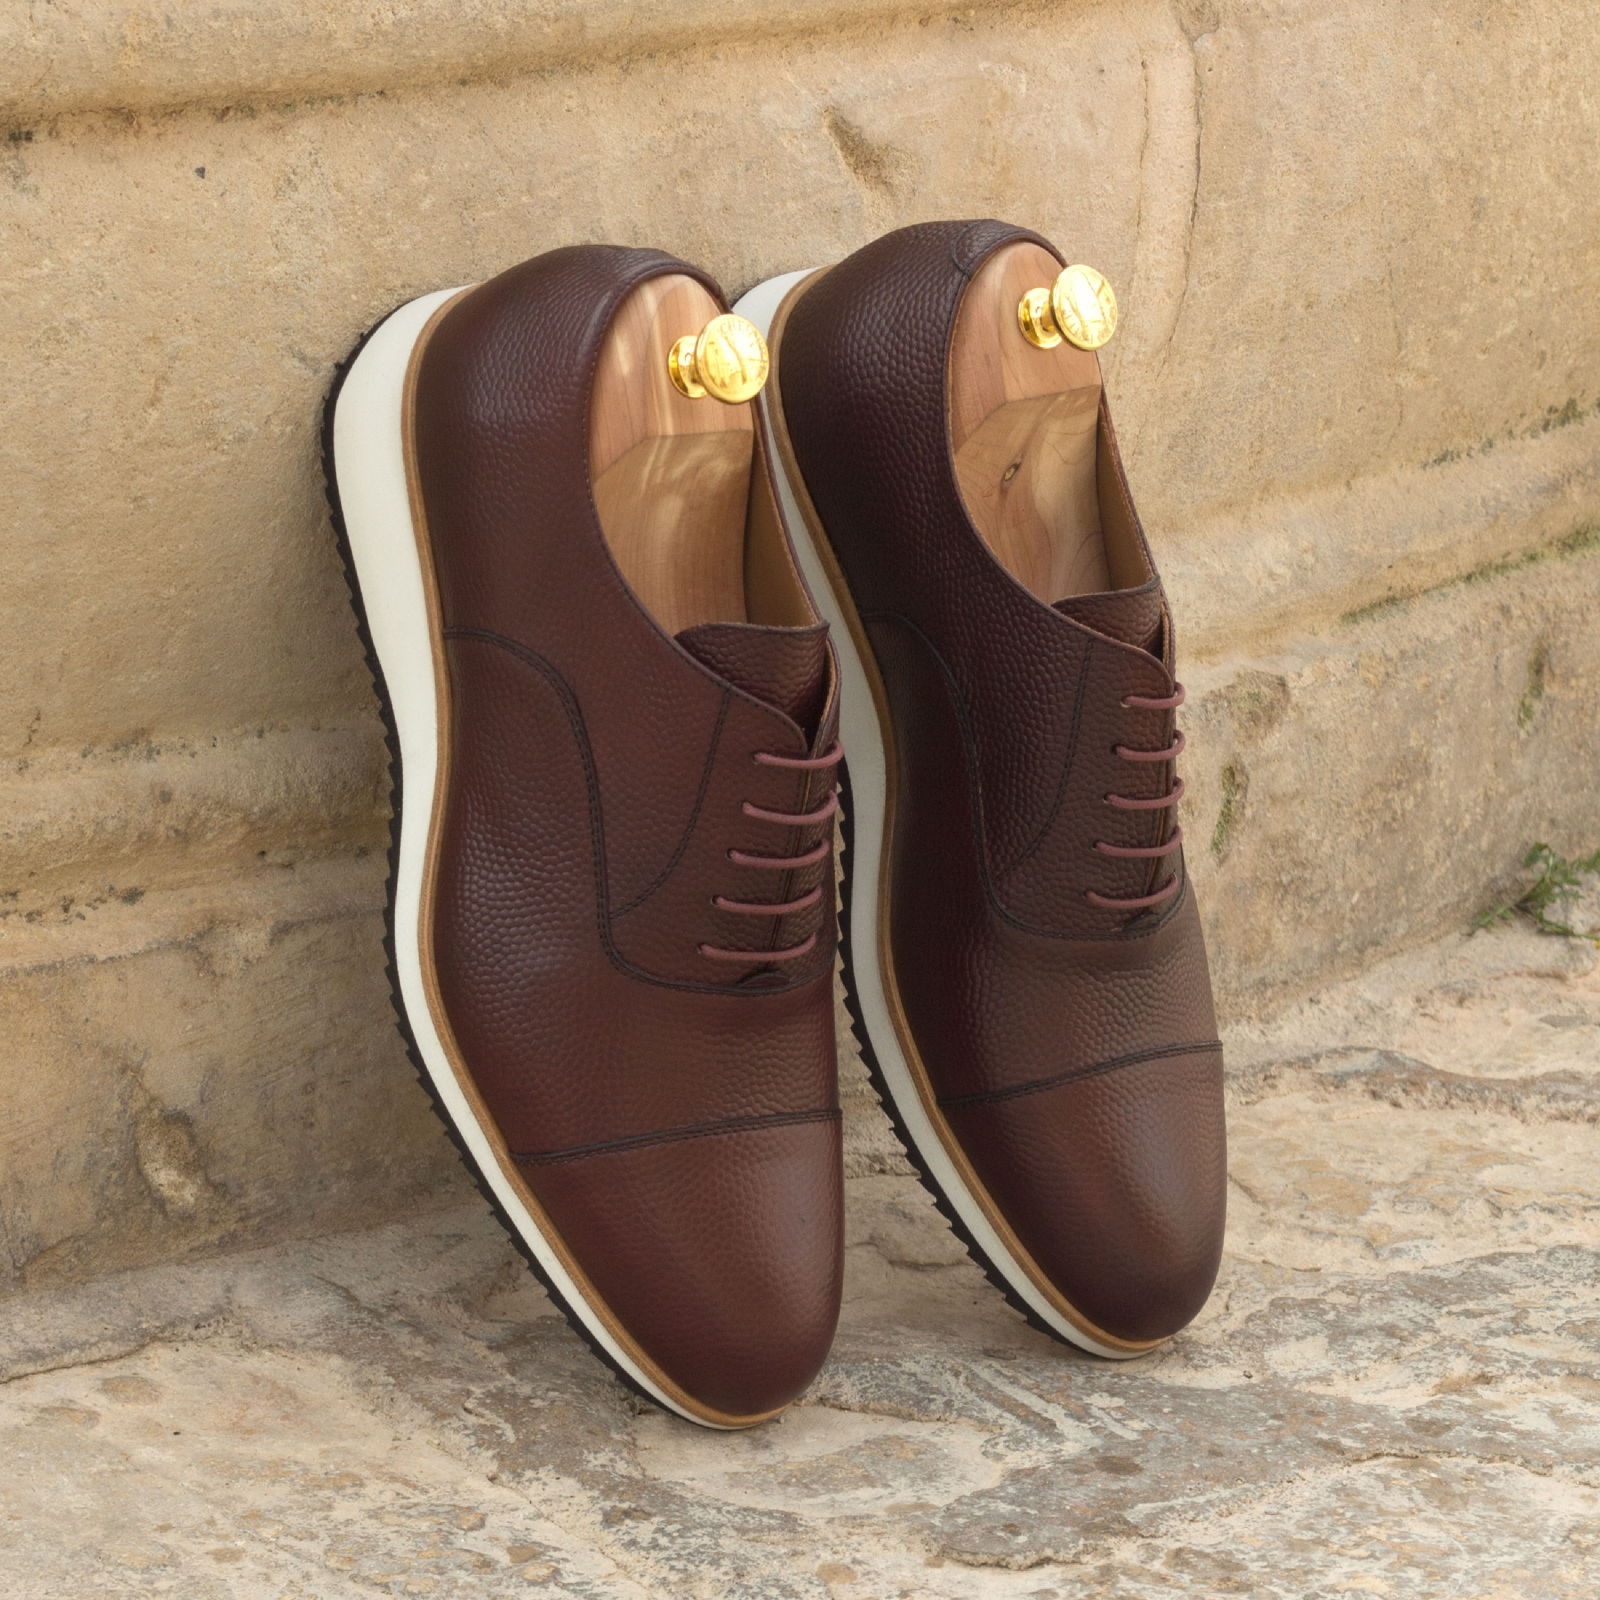 Oxford burgundy pebble grain : 240€